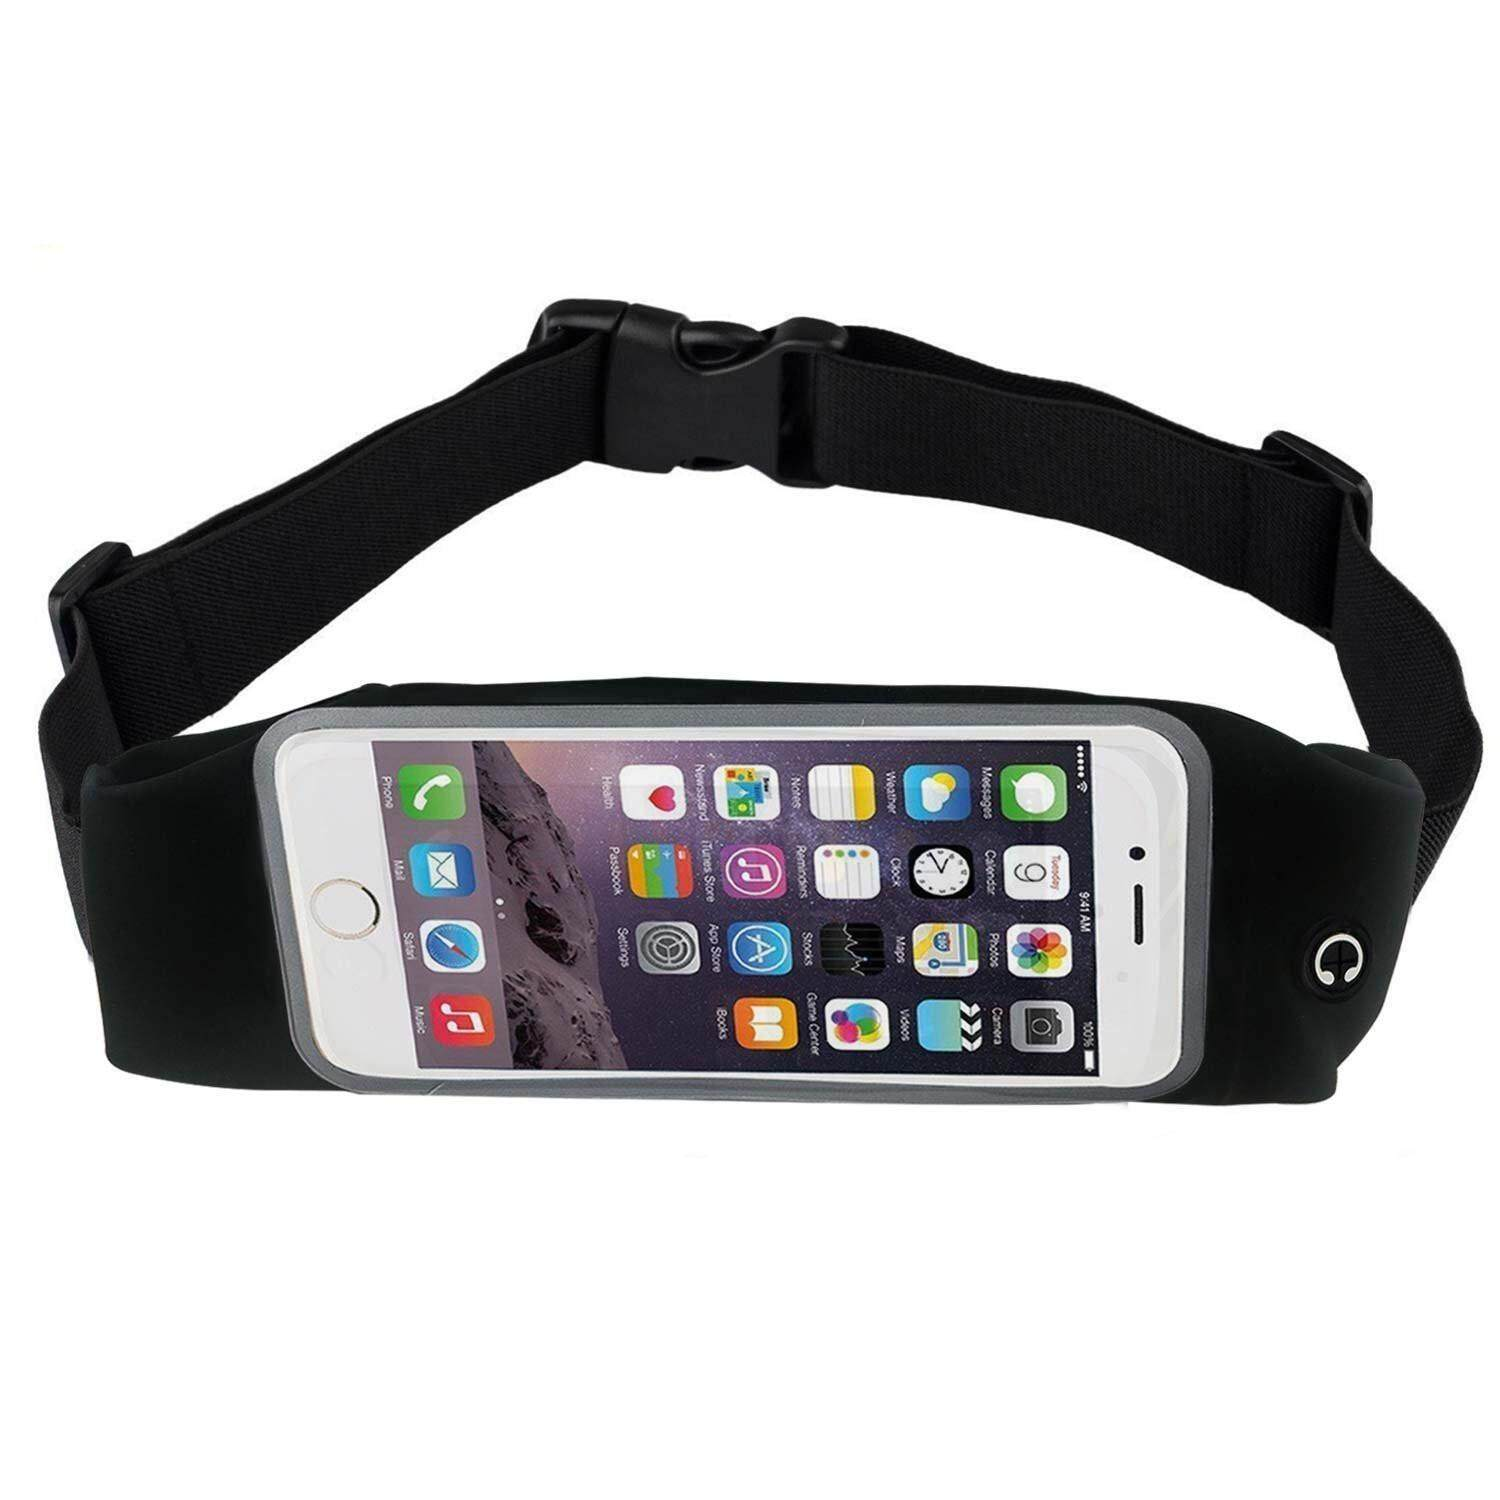 SOBUY 5.5 Inch Screen Cell Phone Waterproof Running Belt Waist Pack Universal Outdoor Sports Workout Fanny Pack With Clear Touch Screen Function For Men Women